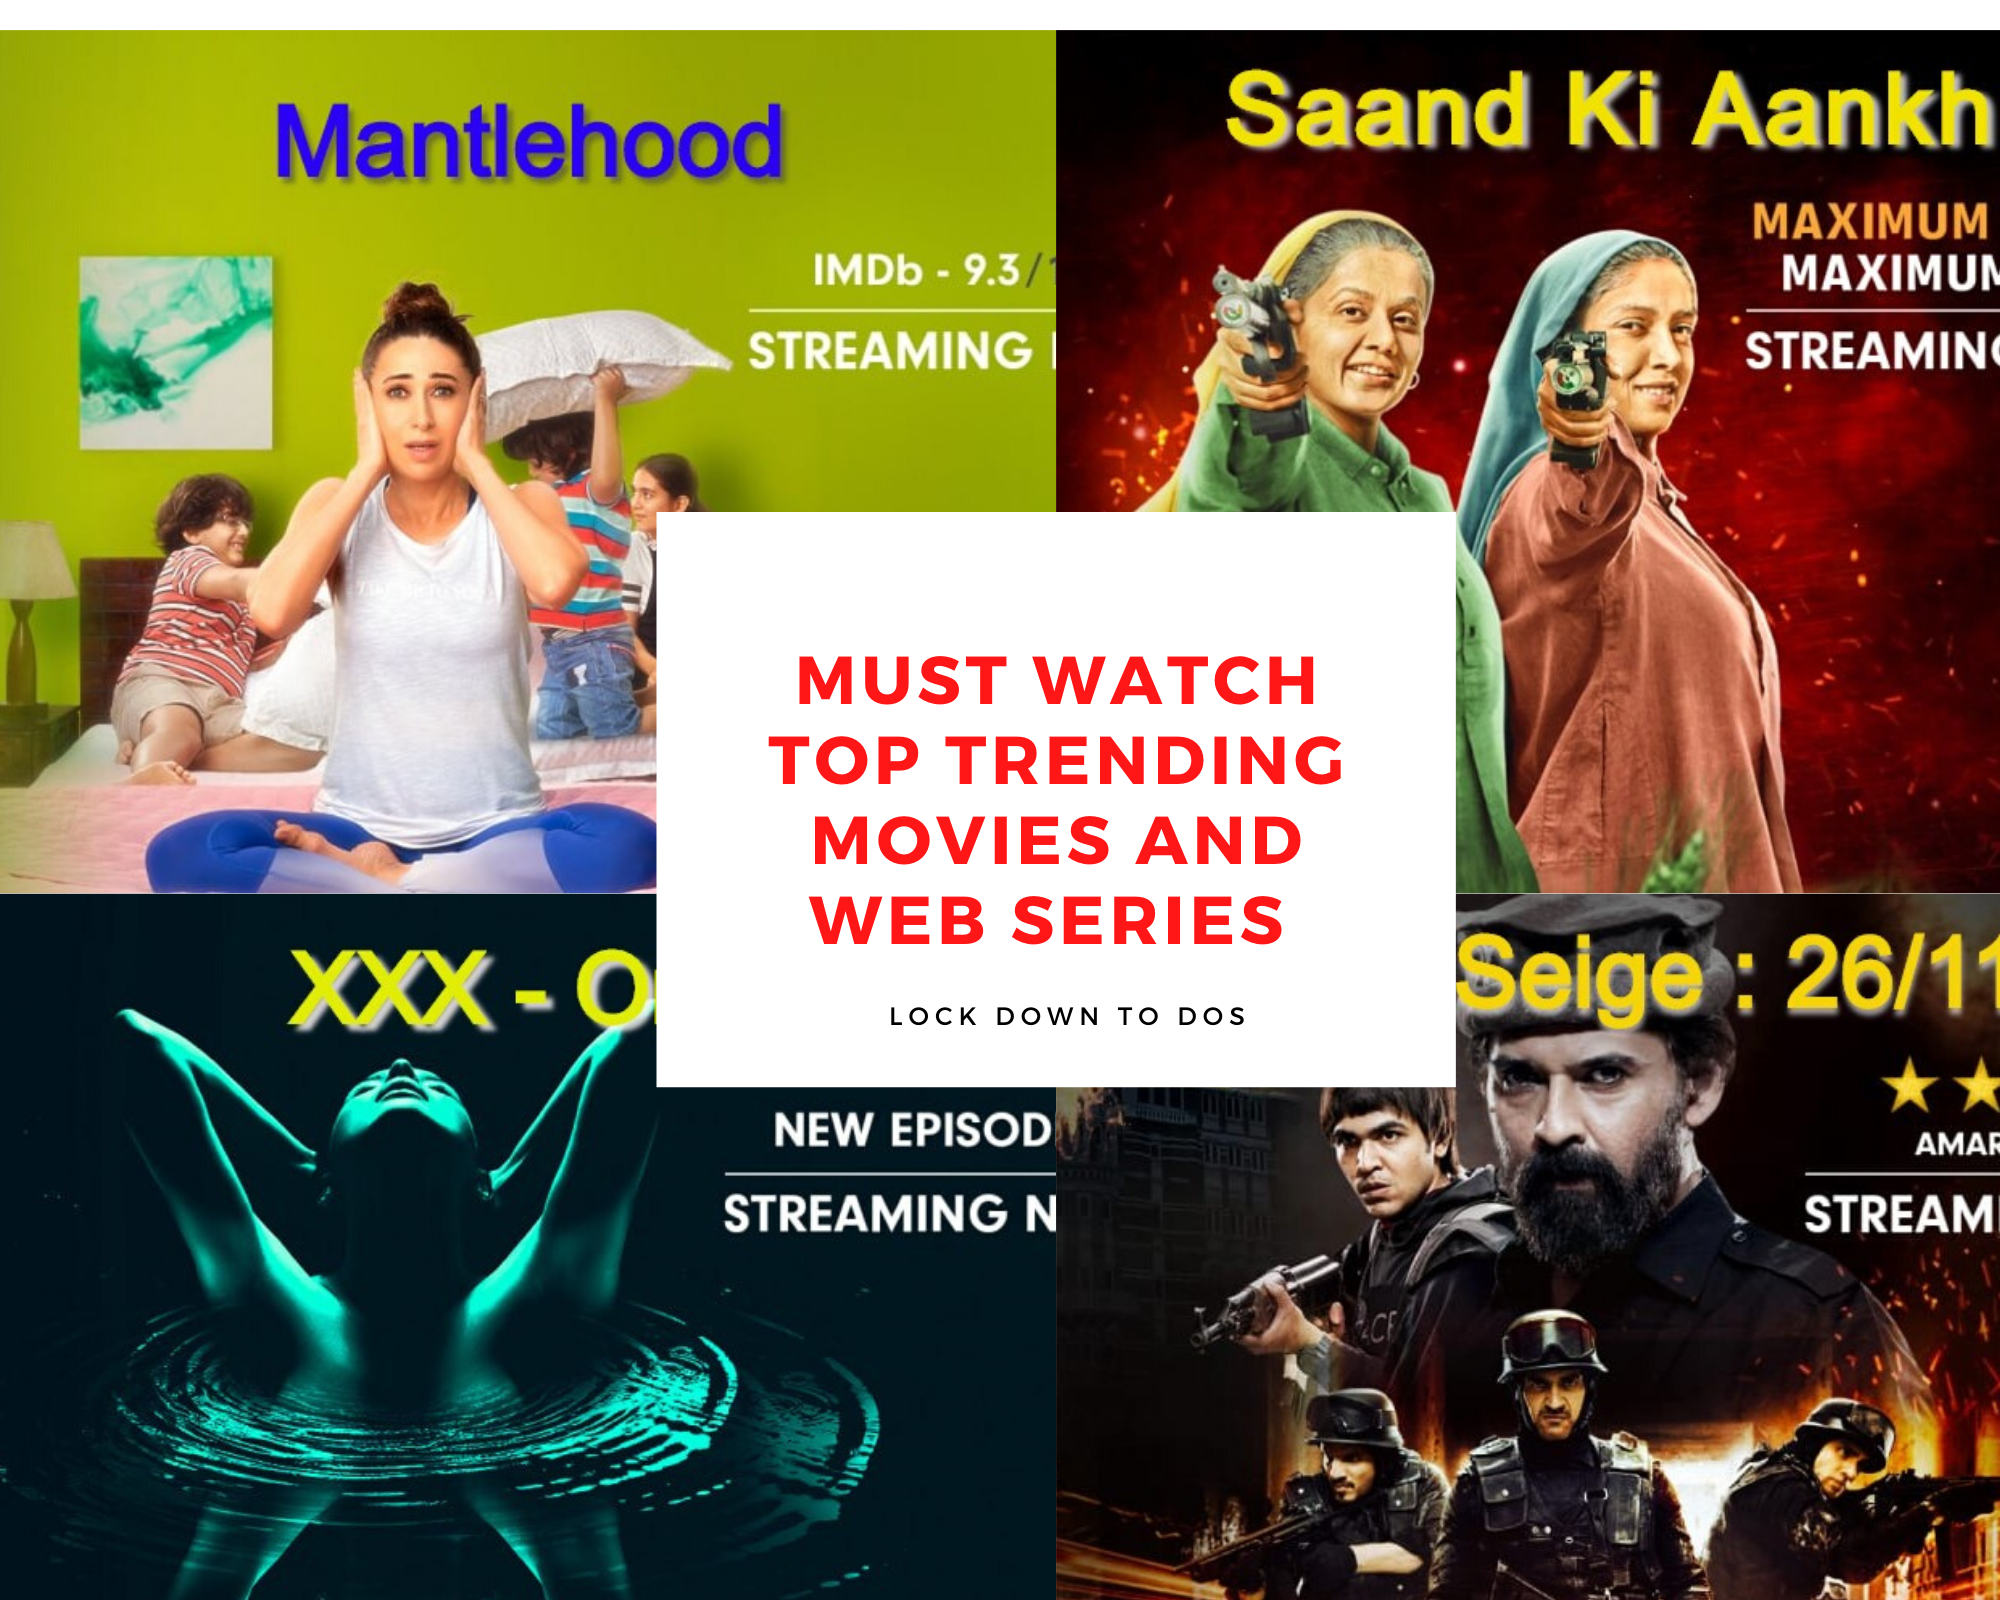 Must Watch Top Trending Movies and web series on Zee5 : Things to do in Lock Down